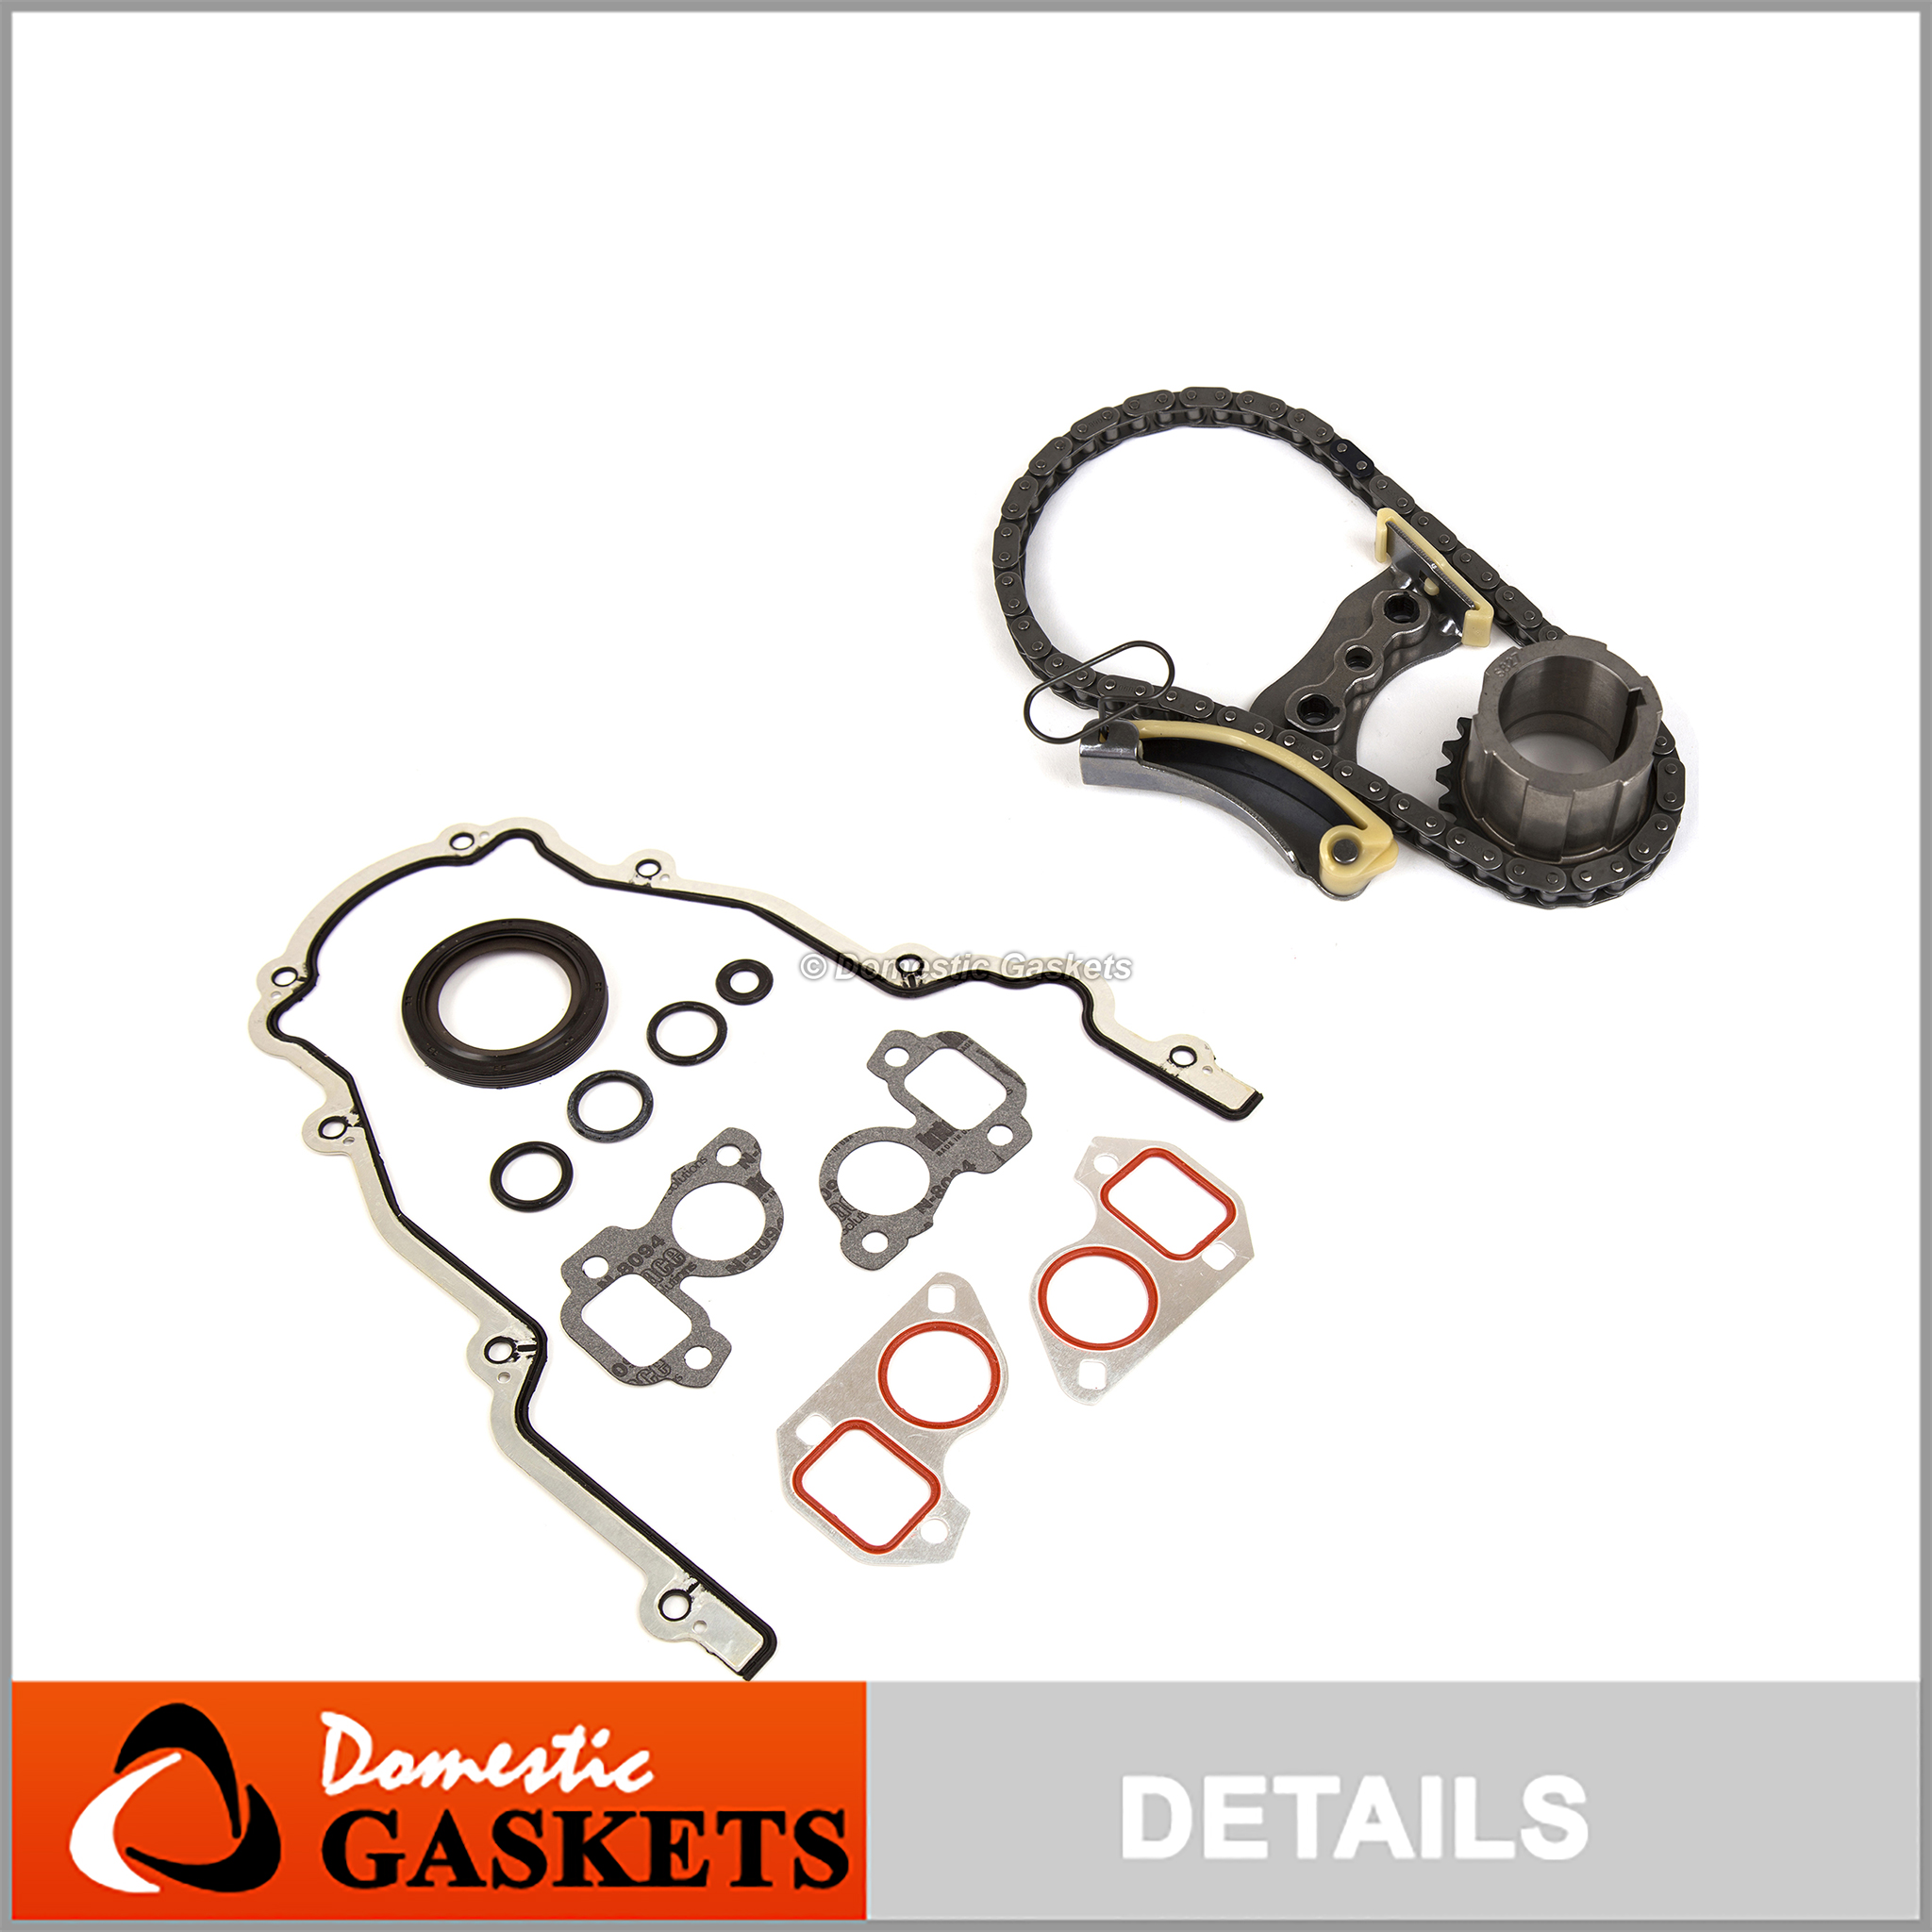 Timing Chain Kit Cover Gasket for 07-13 Buick Cadillac Chevrolet GMC 5.3 6.0 6.2